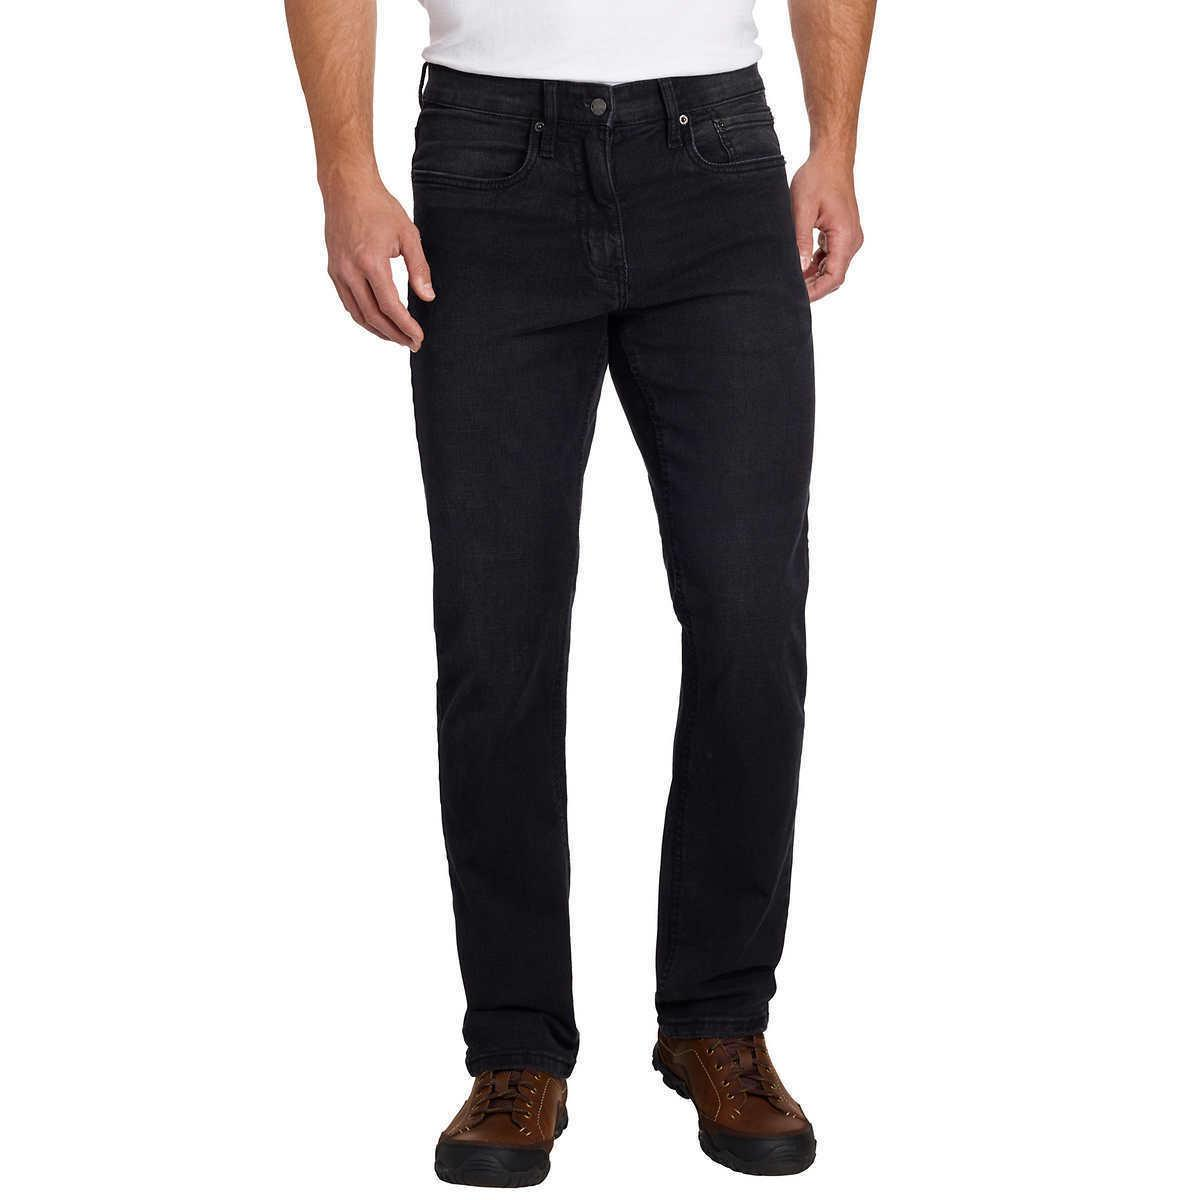 Urban Star Men's Relaxed Fit Jean